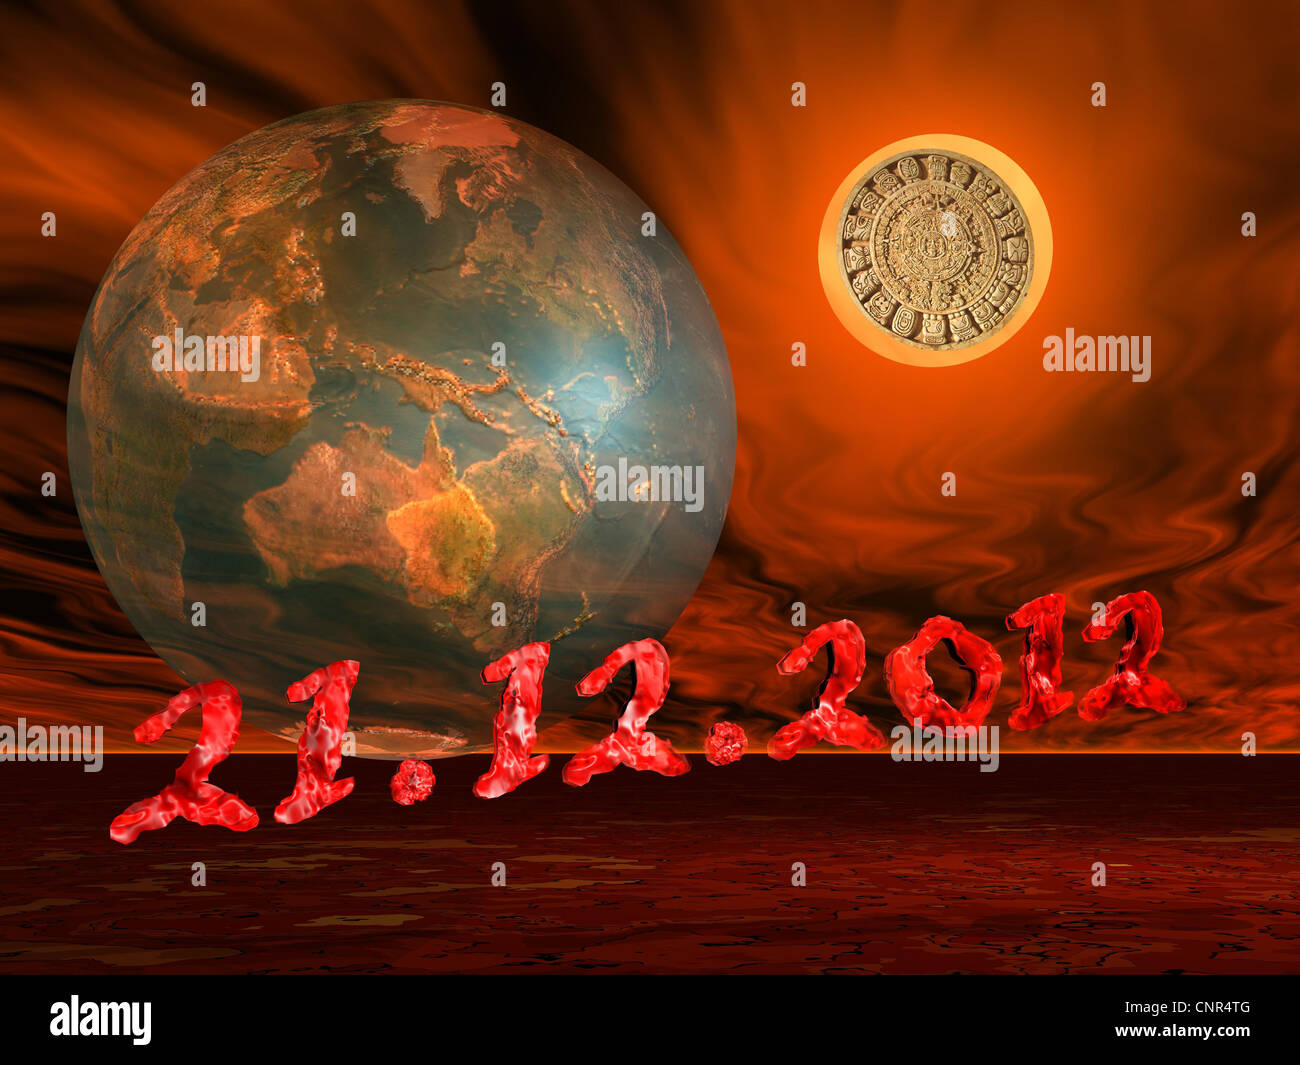 maya prophecy on the sun next to the earth and the end of the world